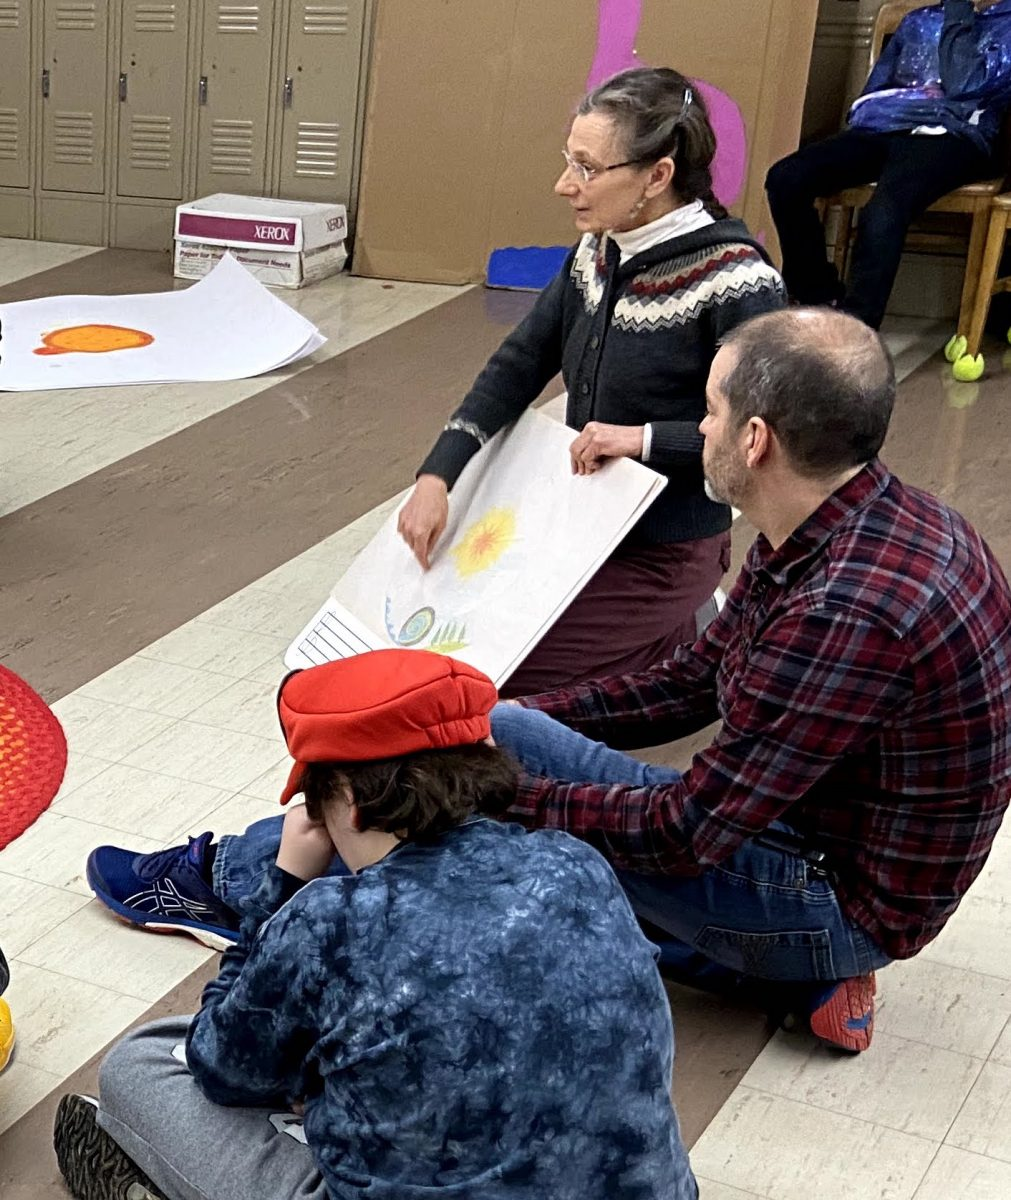 one male student in a red hat and blue tie dyed shirt, one male teacher in a red and blue plaid shirt, and Kris sitting on the floor of a classroom. Kris is wearing a grey sweater and holding a large sheet of paper with a drawing on it.